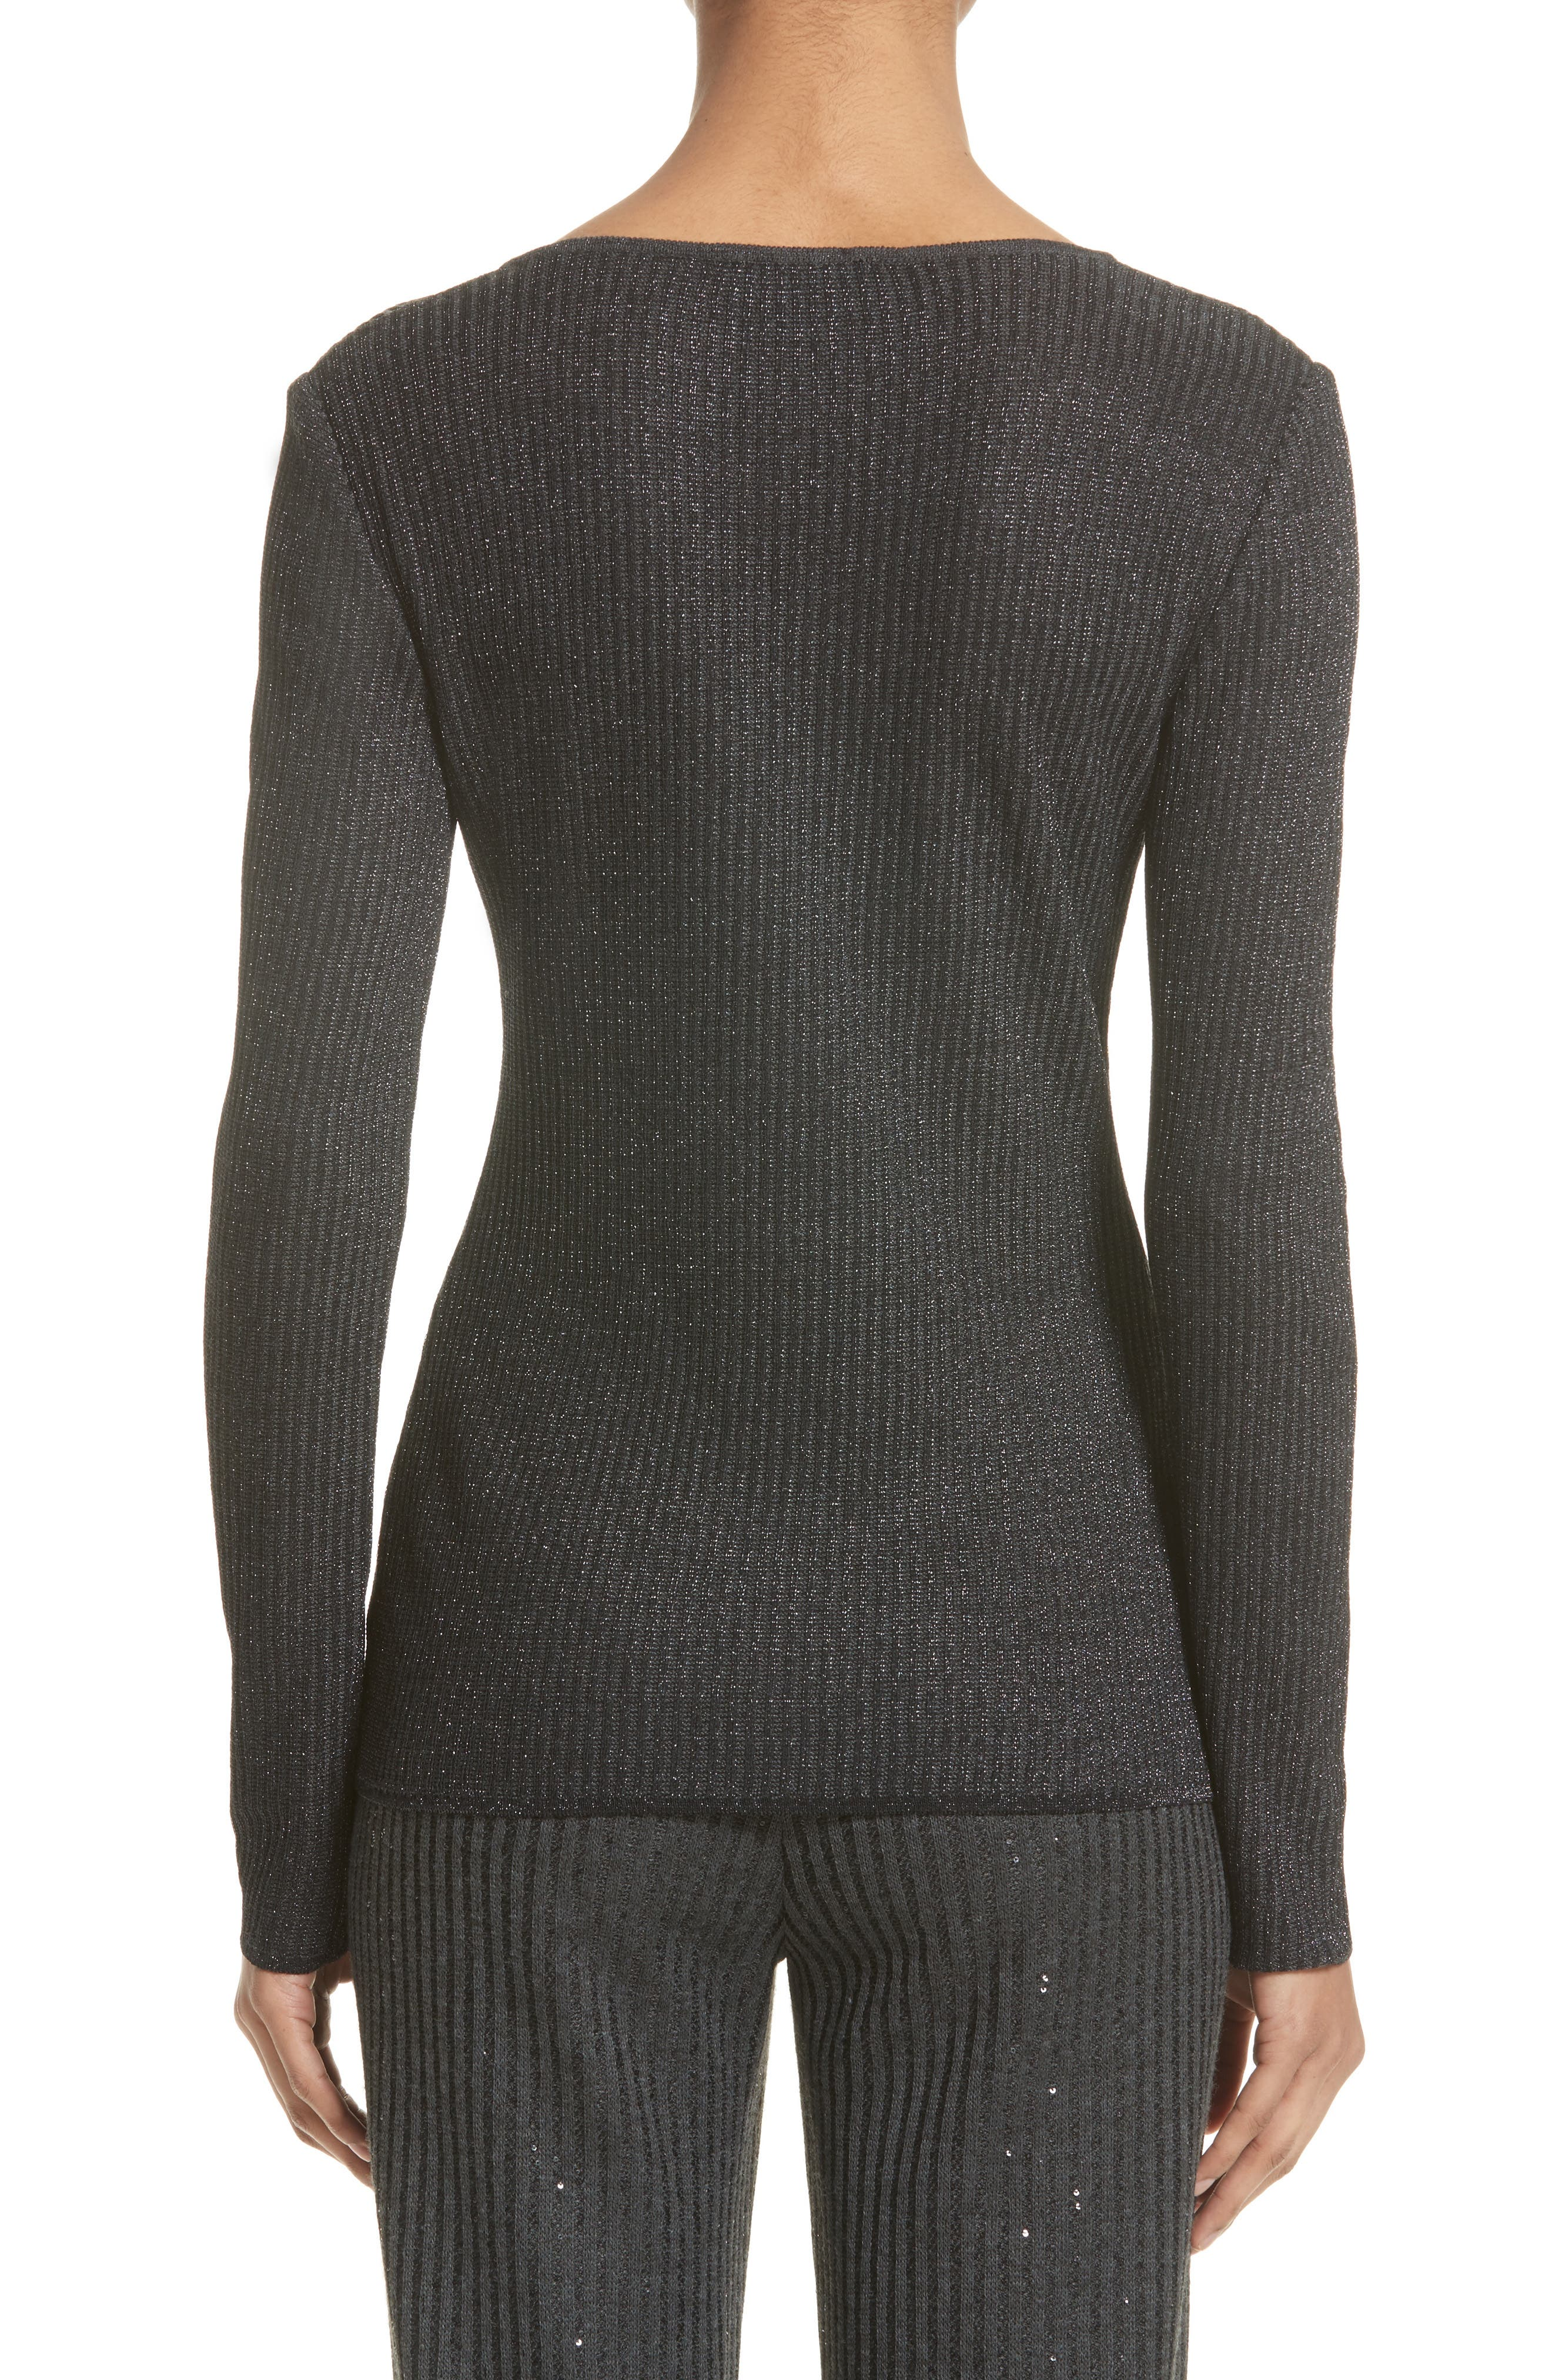 Engineered Rib Sparkle Knit Sweater,                             Alternate thumbnail 2, color,                             020